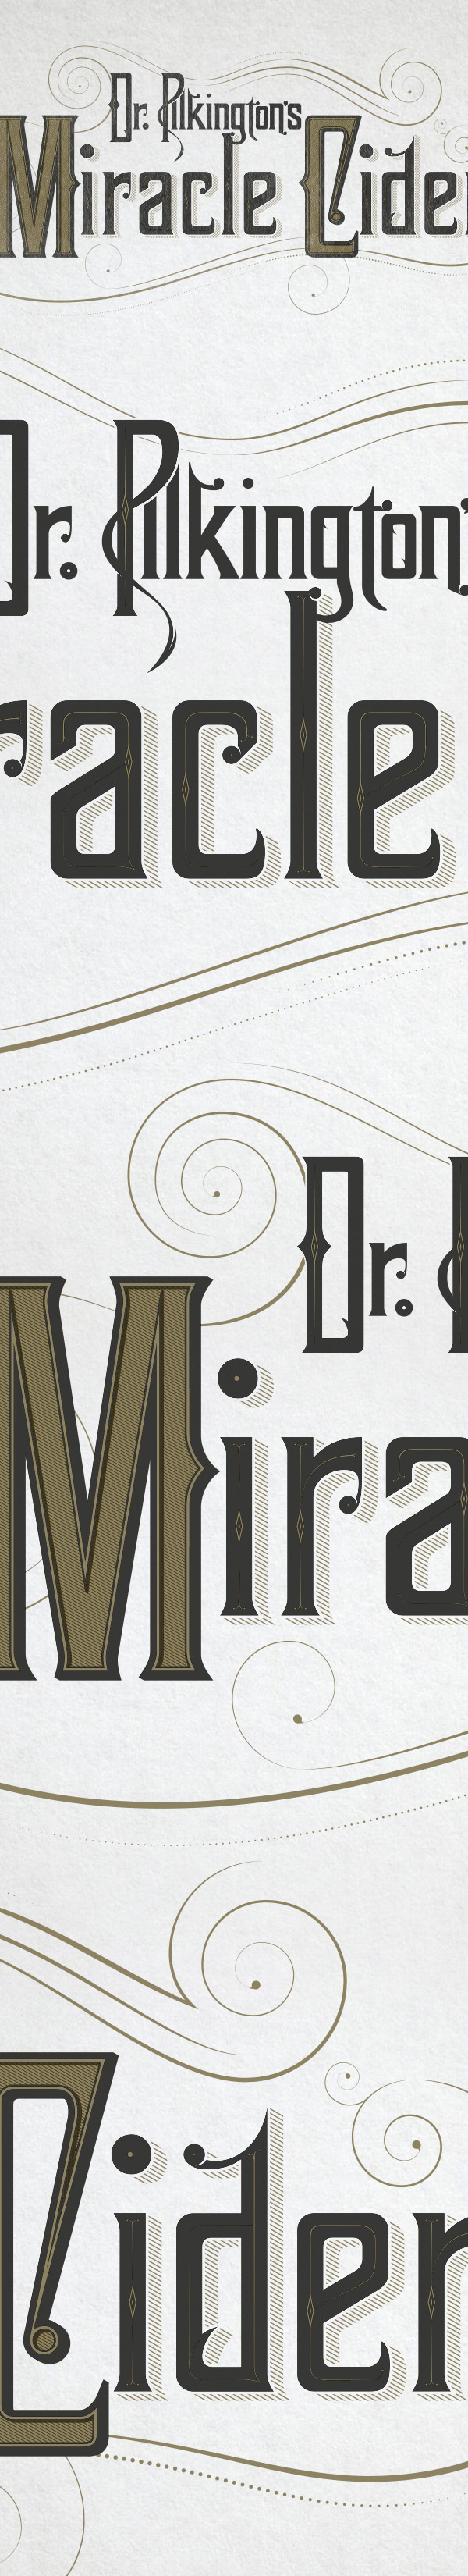 Dr Pilkington's Miracle Cider on Behance #miracle #drink #cider #dr #pilkington